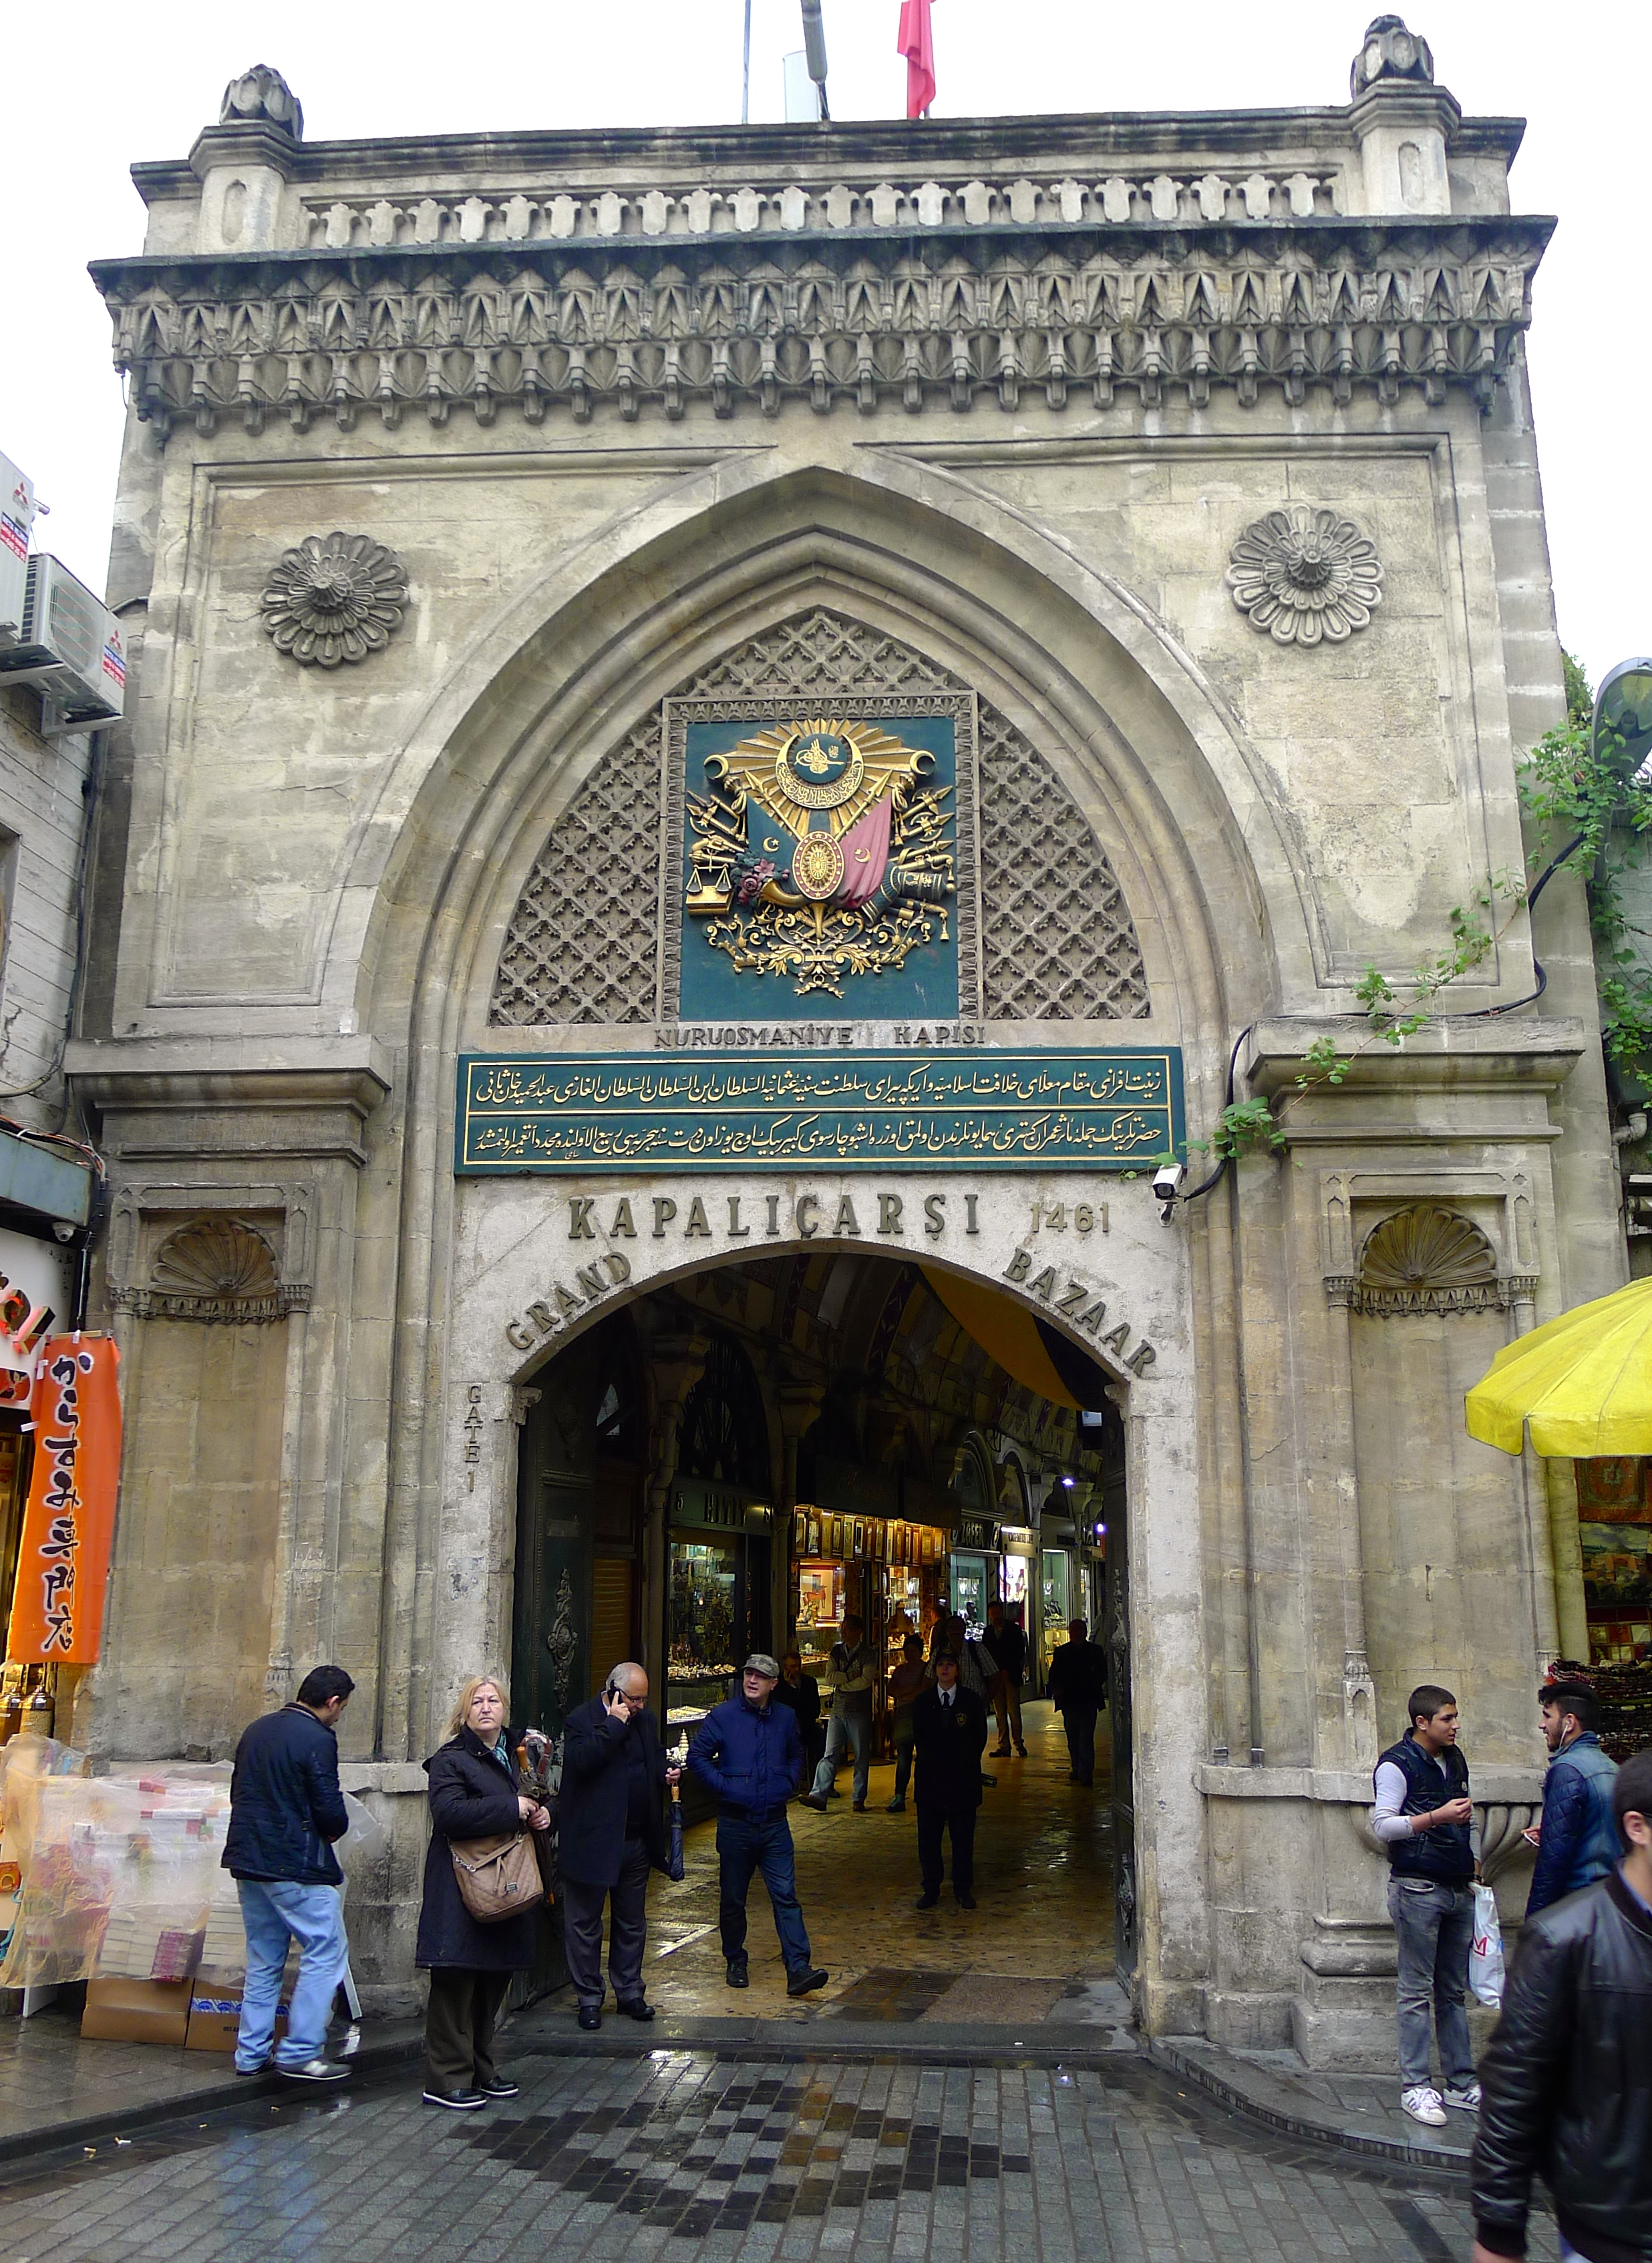 Istanbul Old Bazar and Market 3.jpg